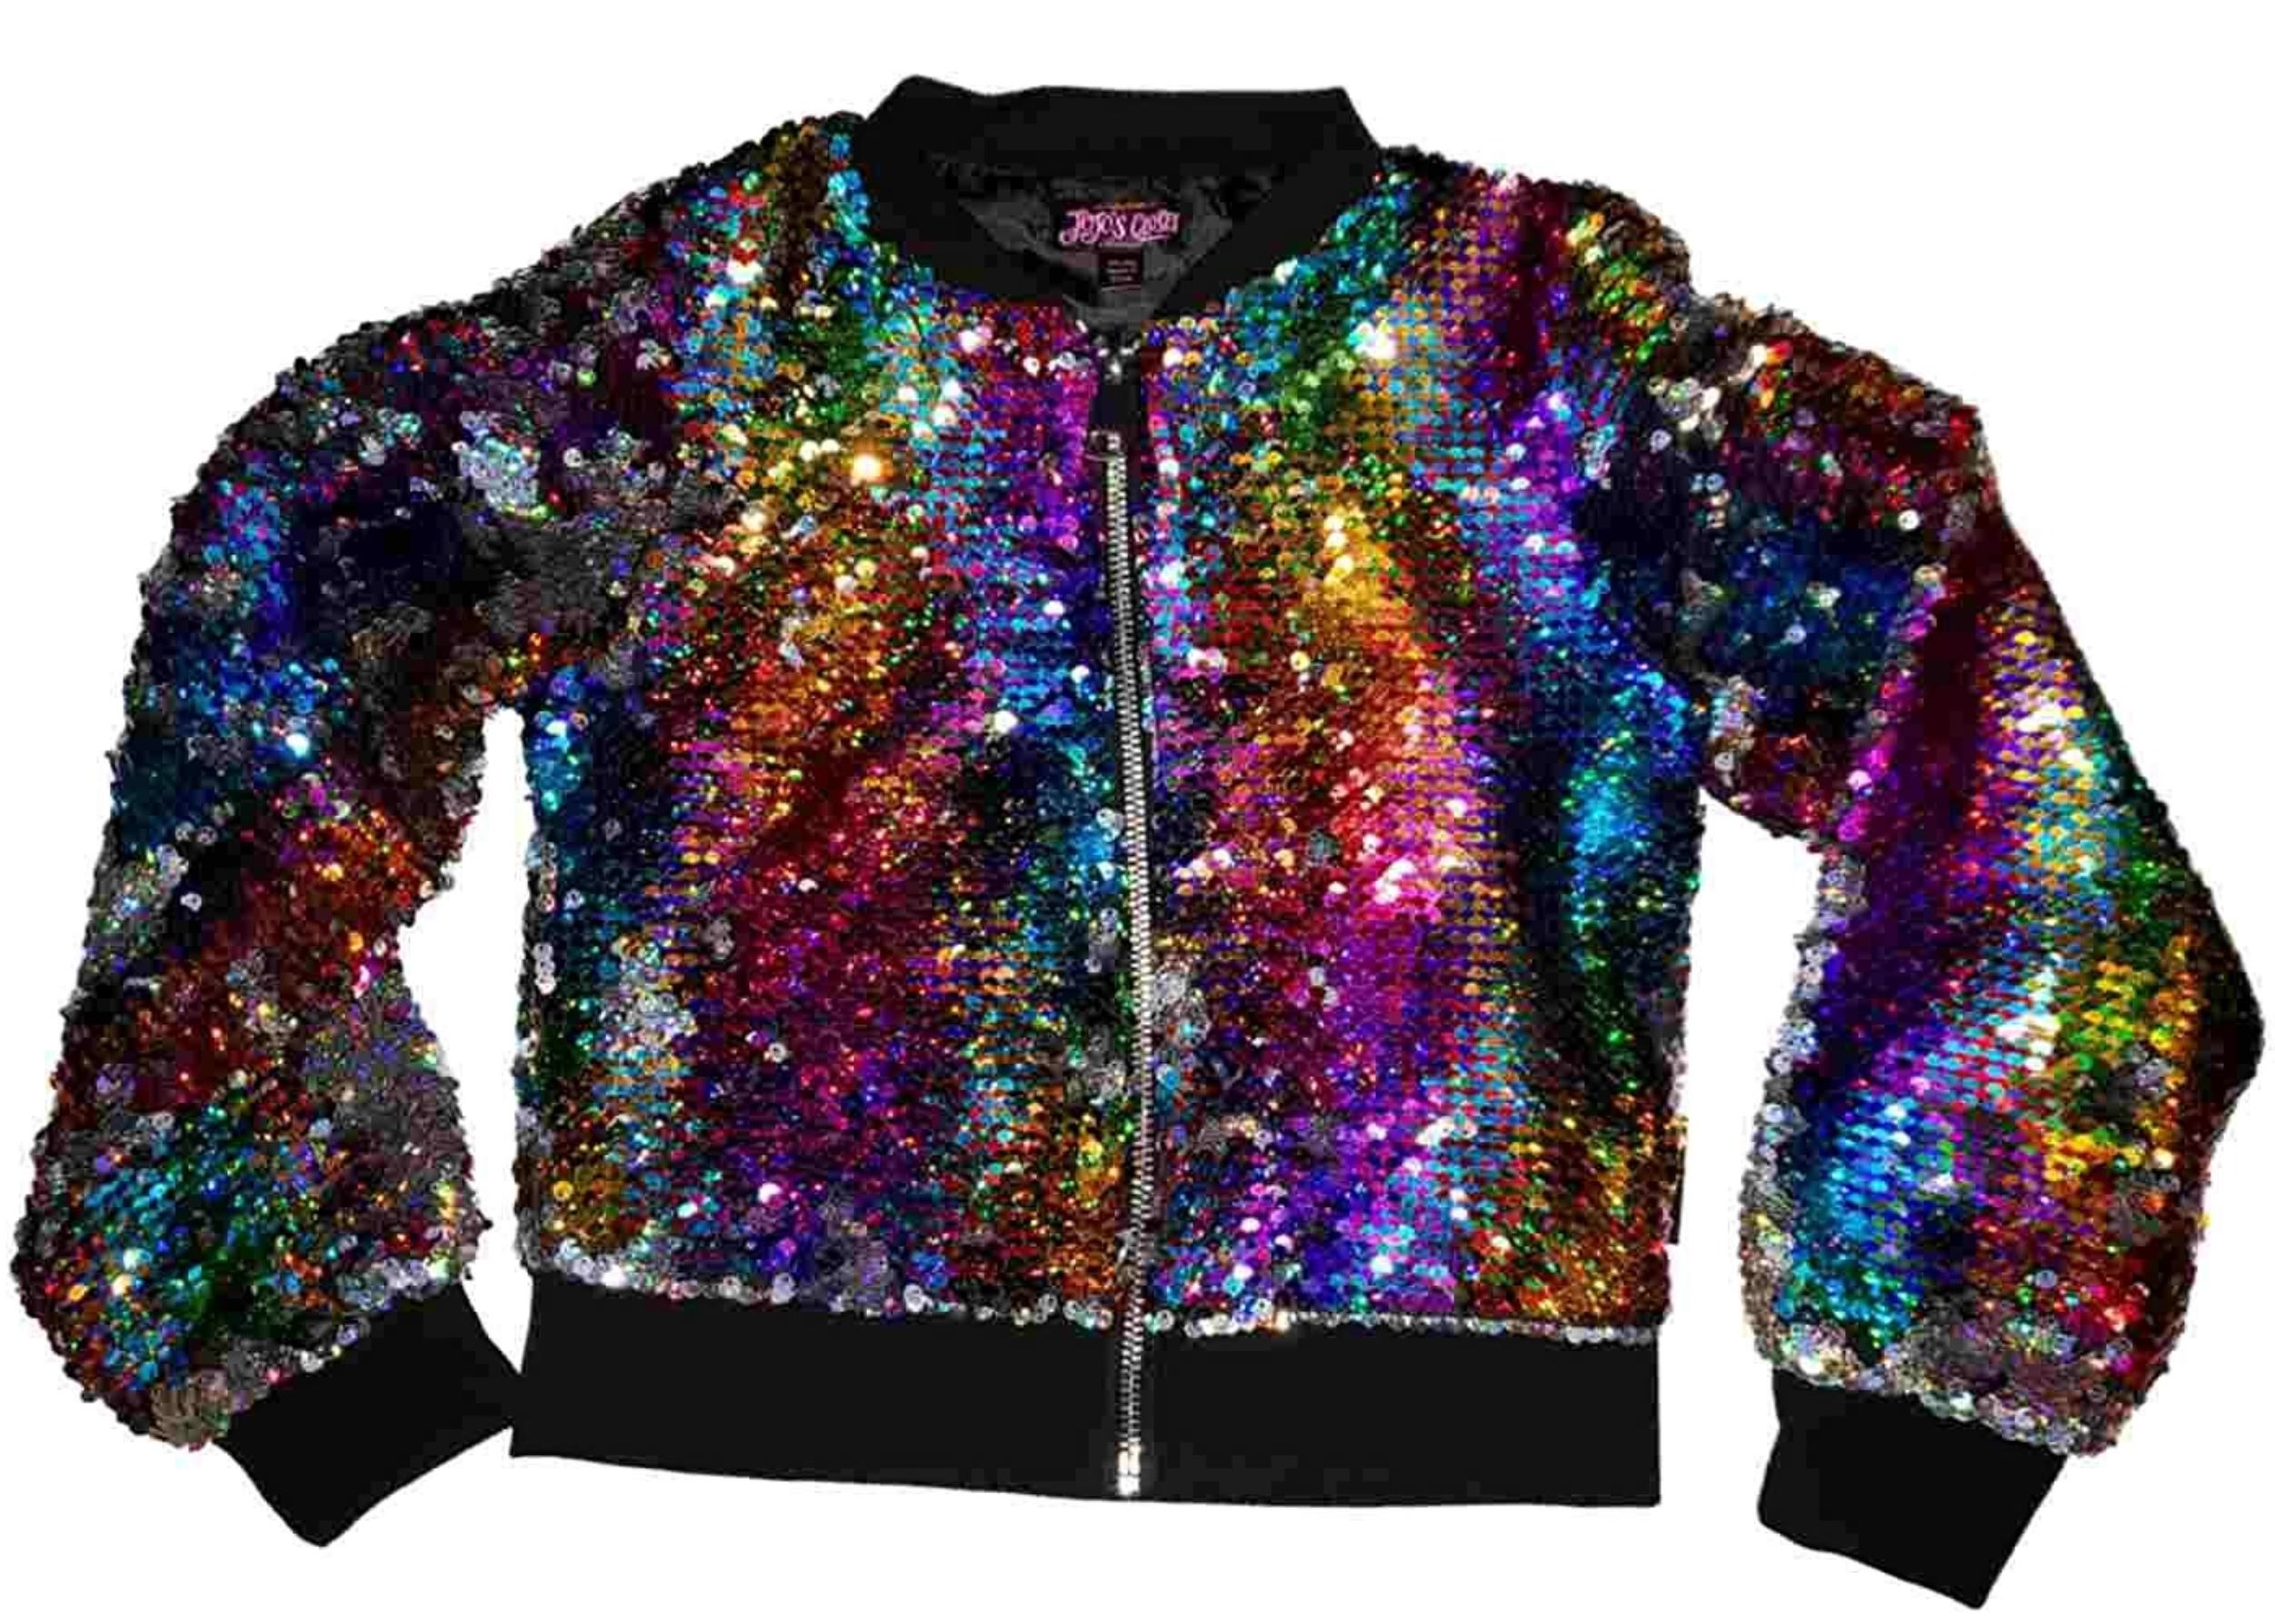 Rainbow Glitter Jacket from amazon.com